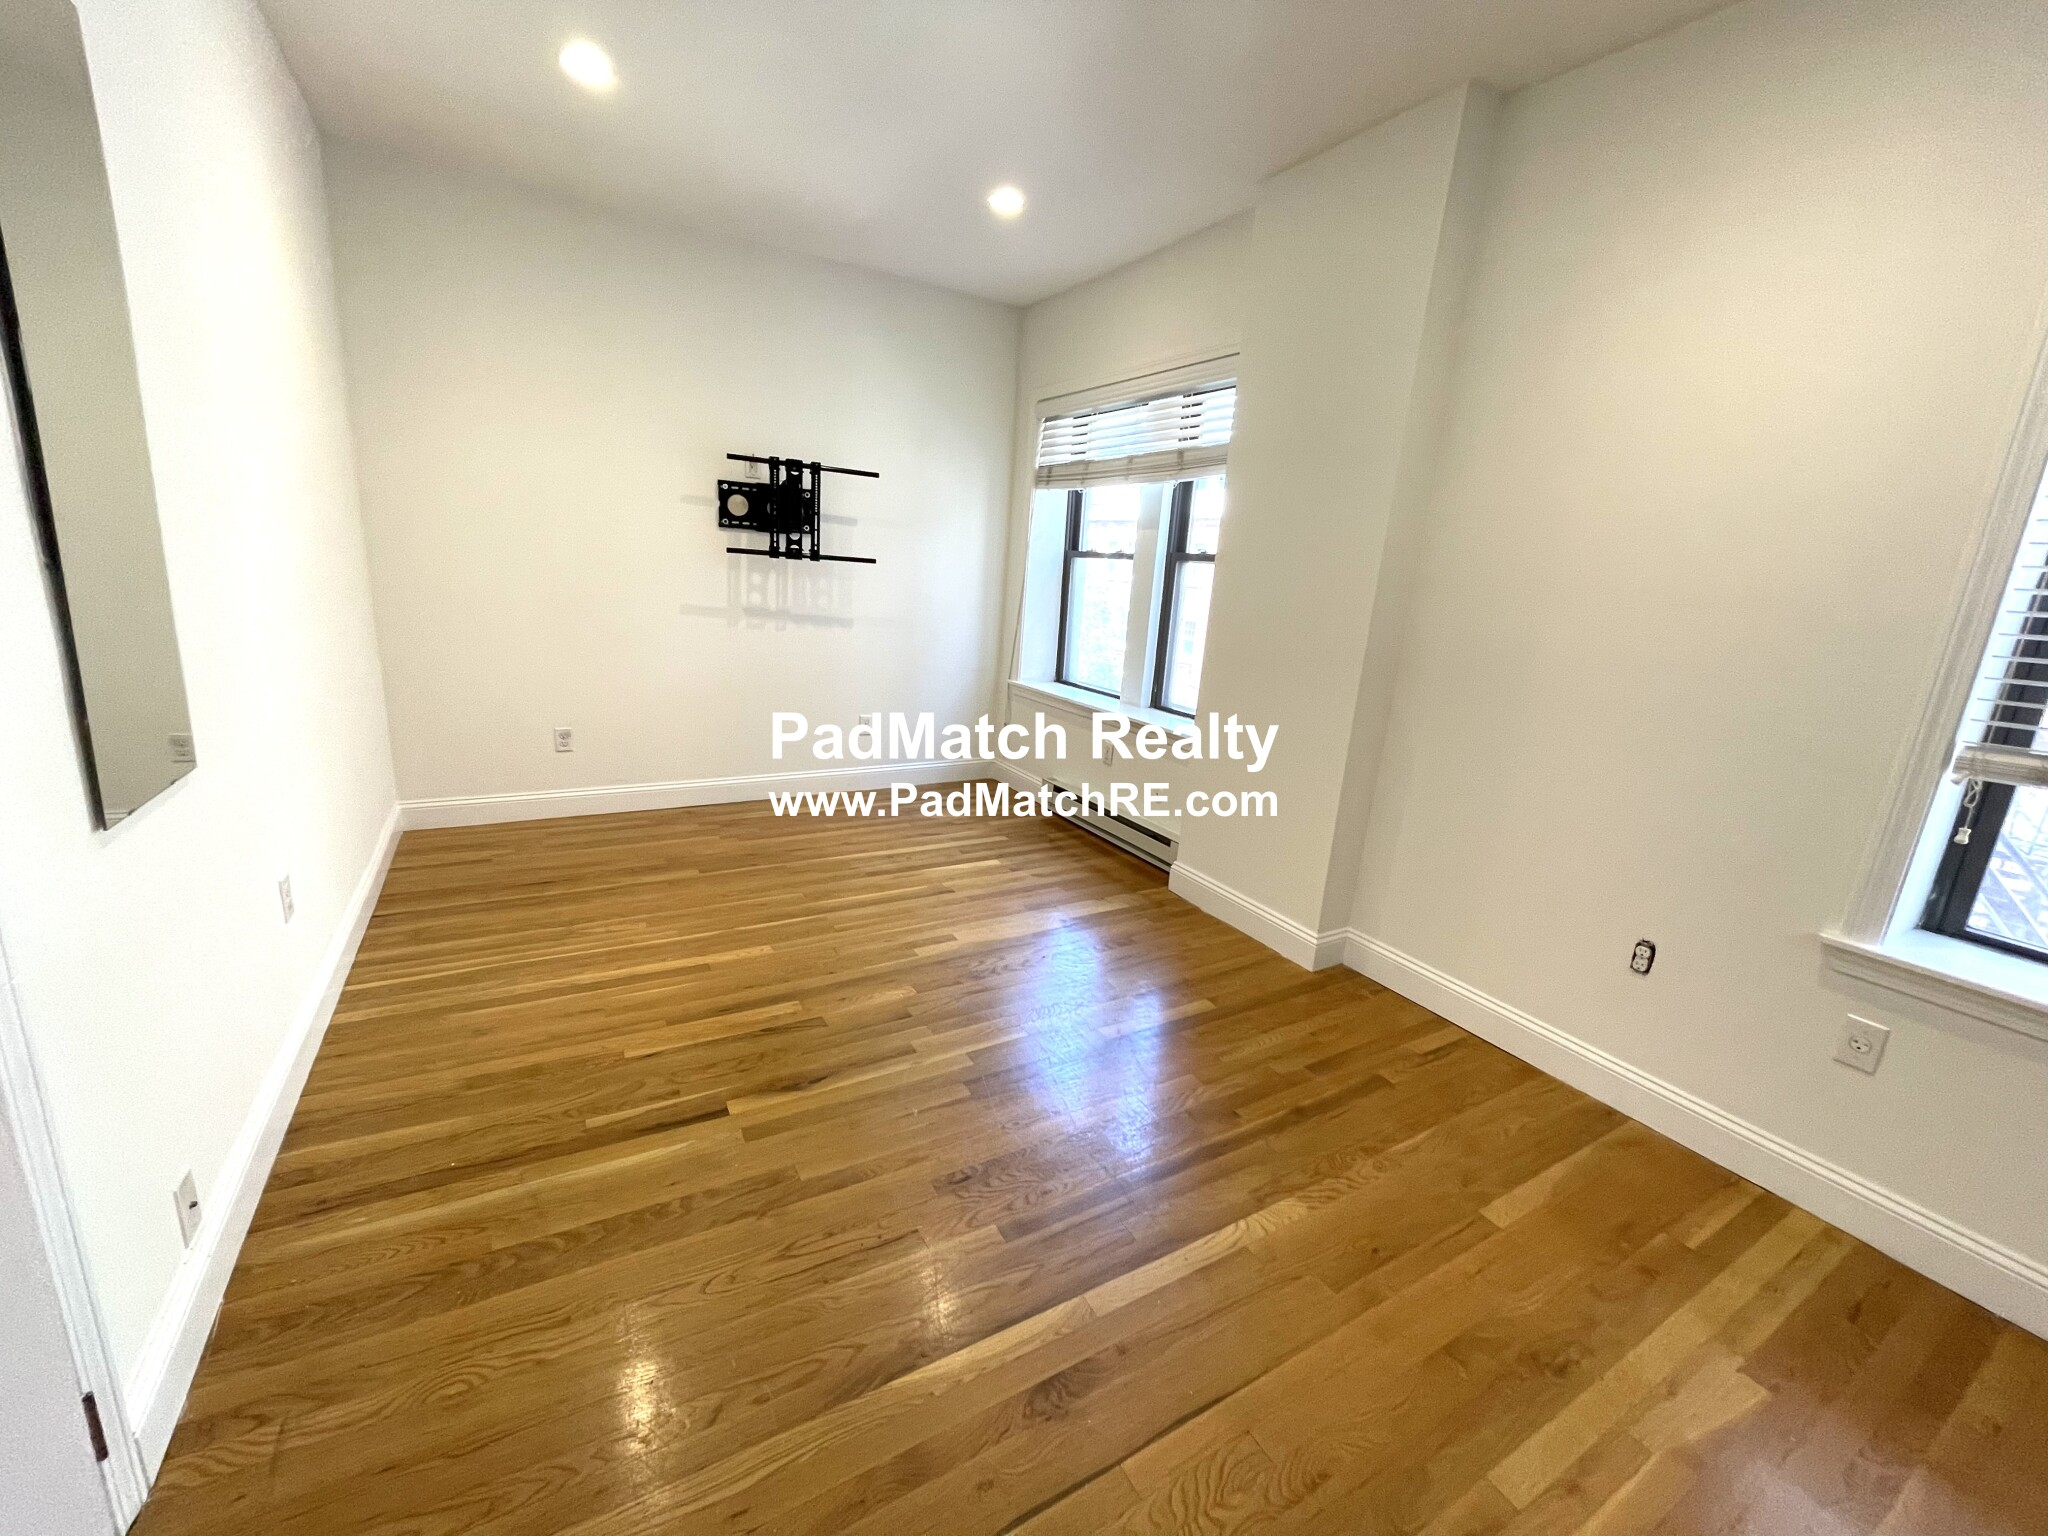 1 Bed, 1 Bath apartment in Boston, North End for $2,400